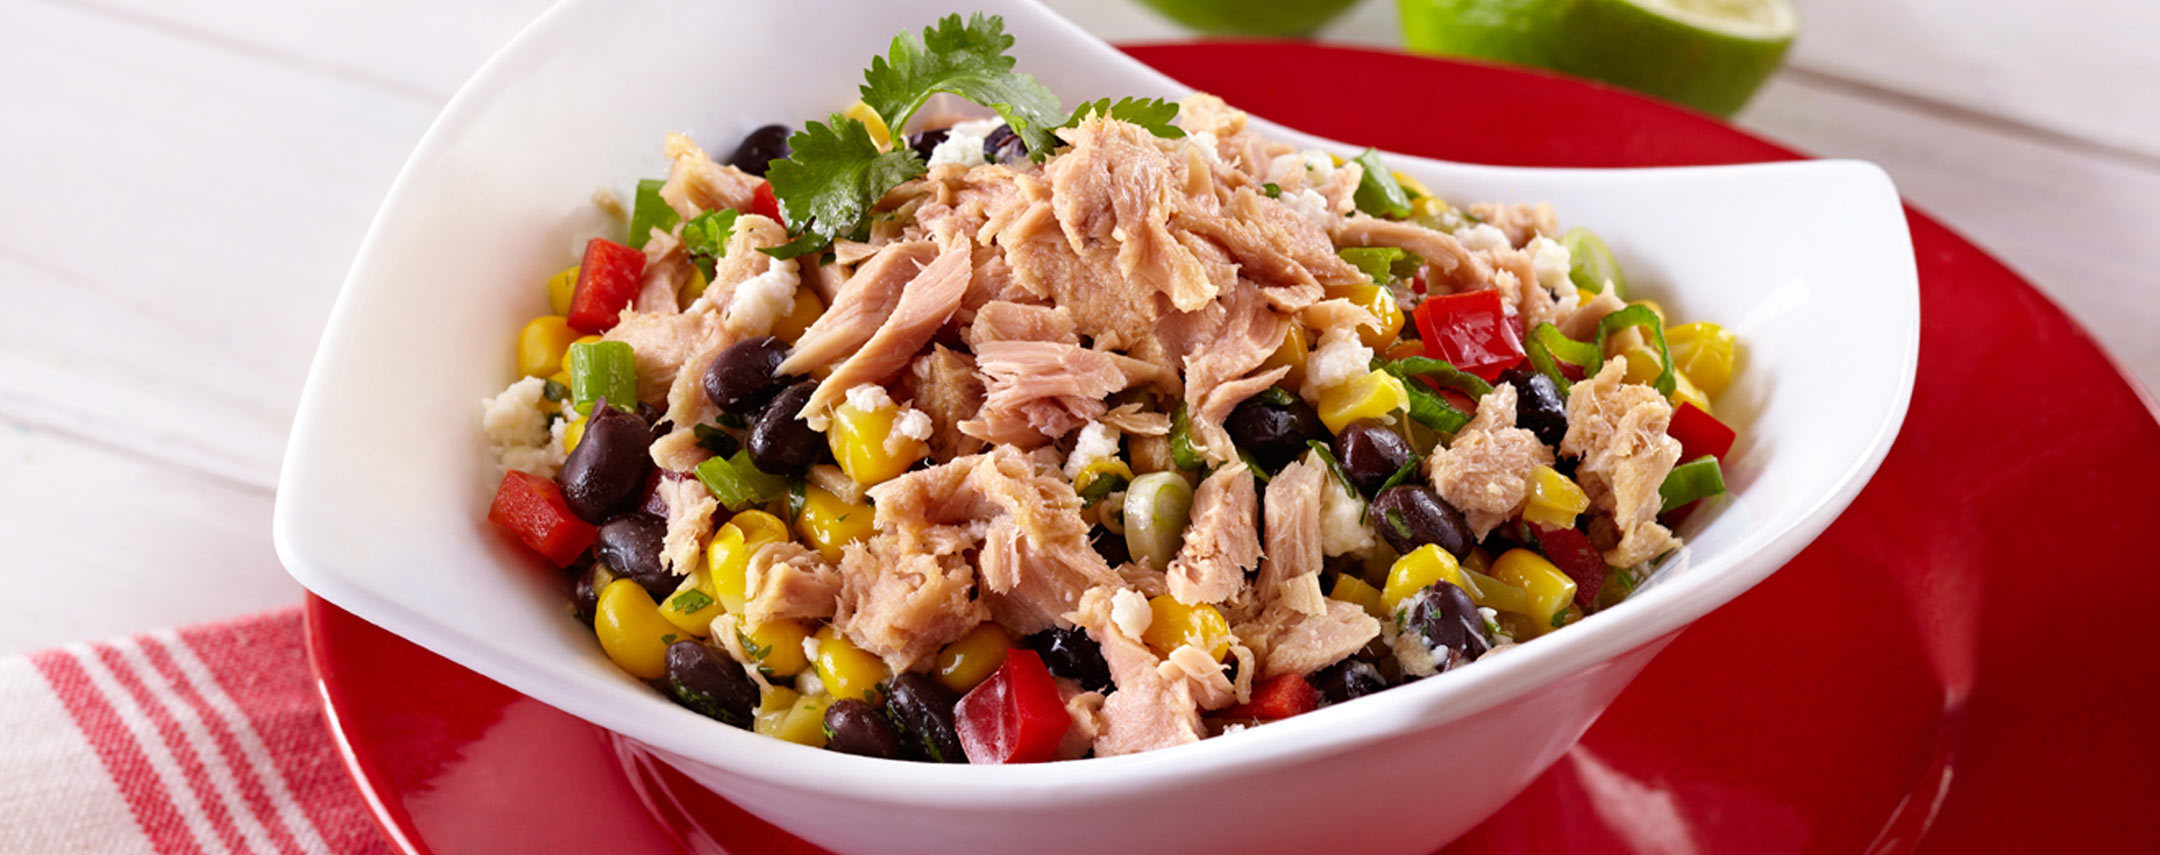 Tuna black bean and corn salad